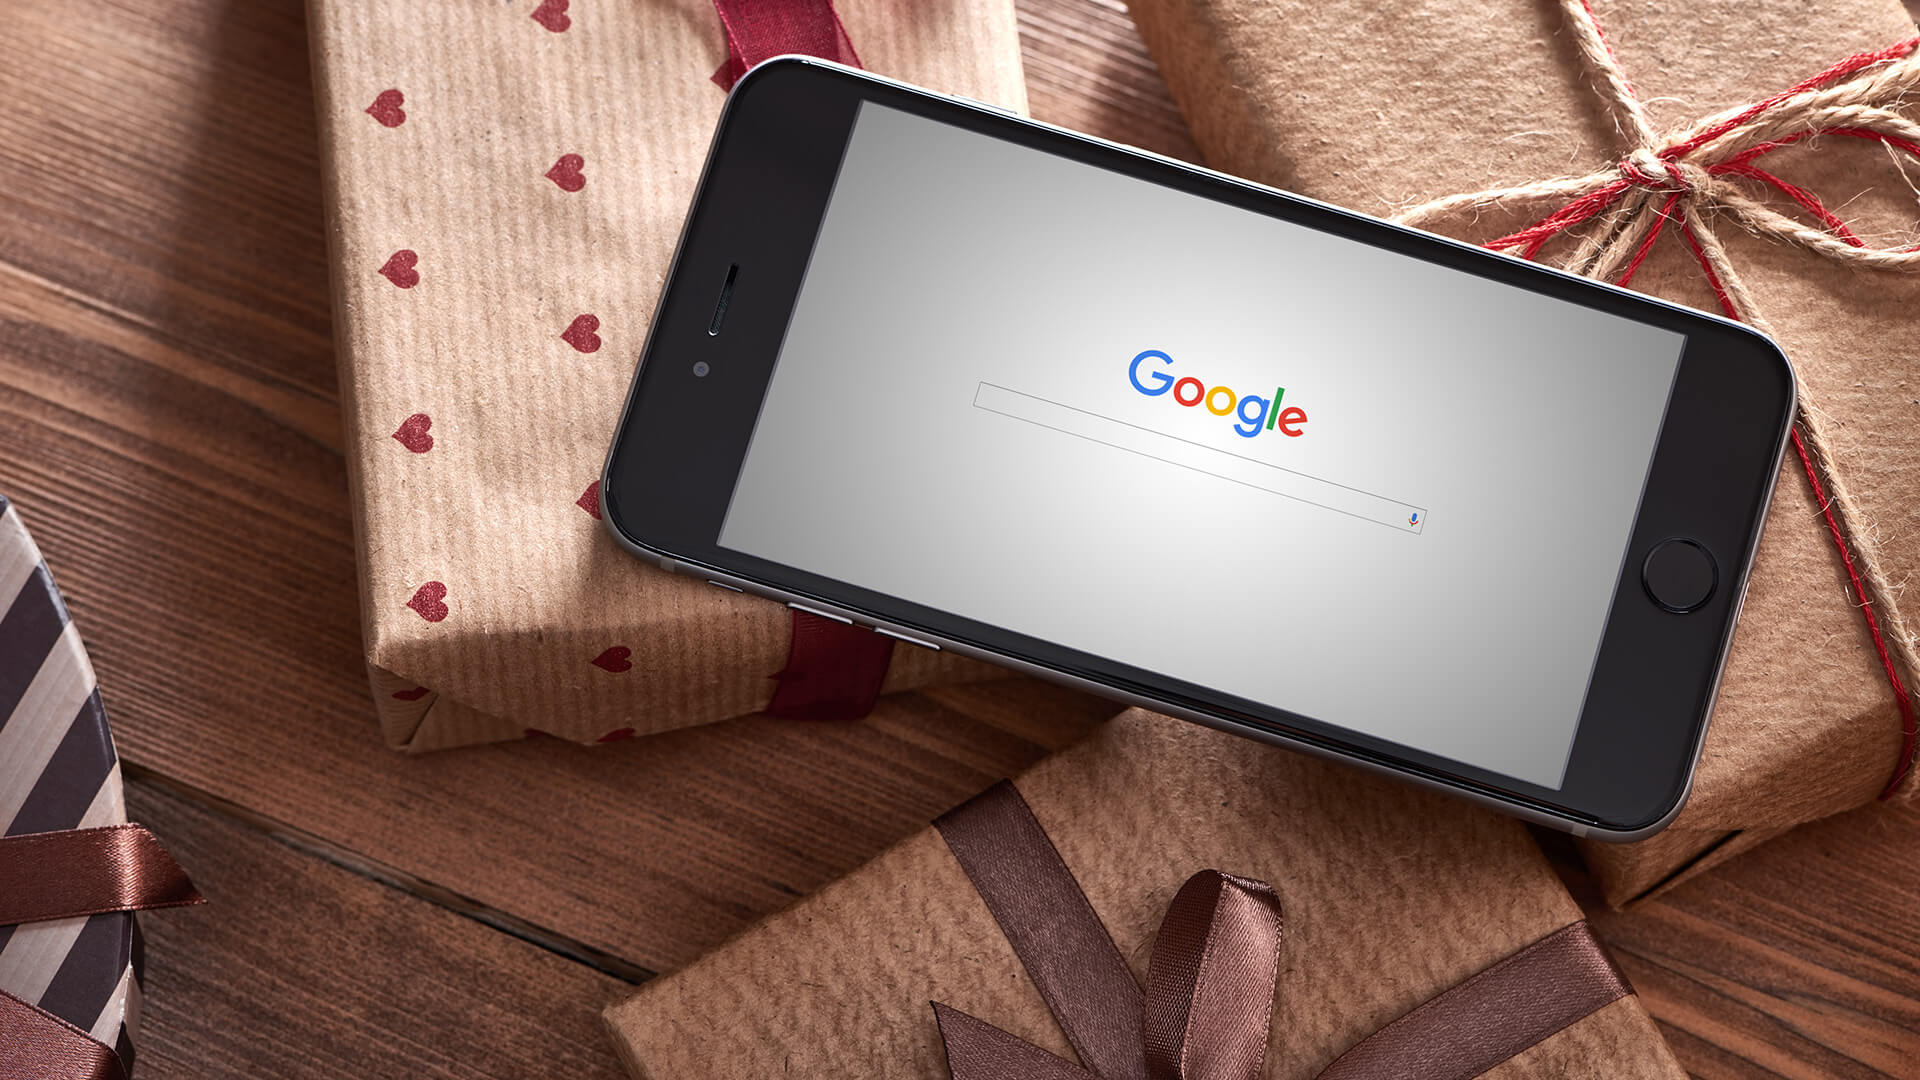 Starting July 1, all new sites will be indexed using Google's mobile-first indexing - Search Engine Land